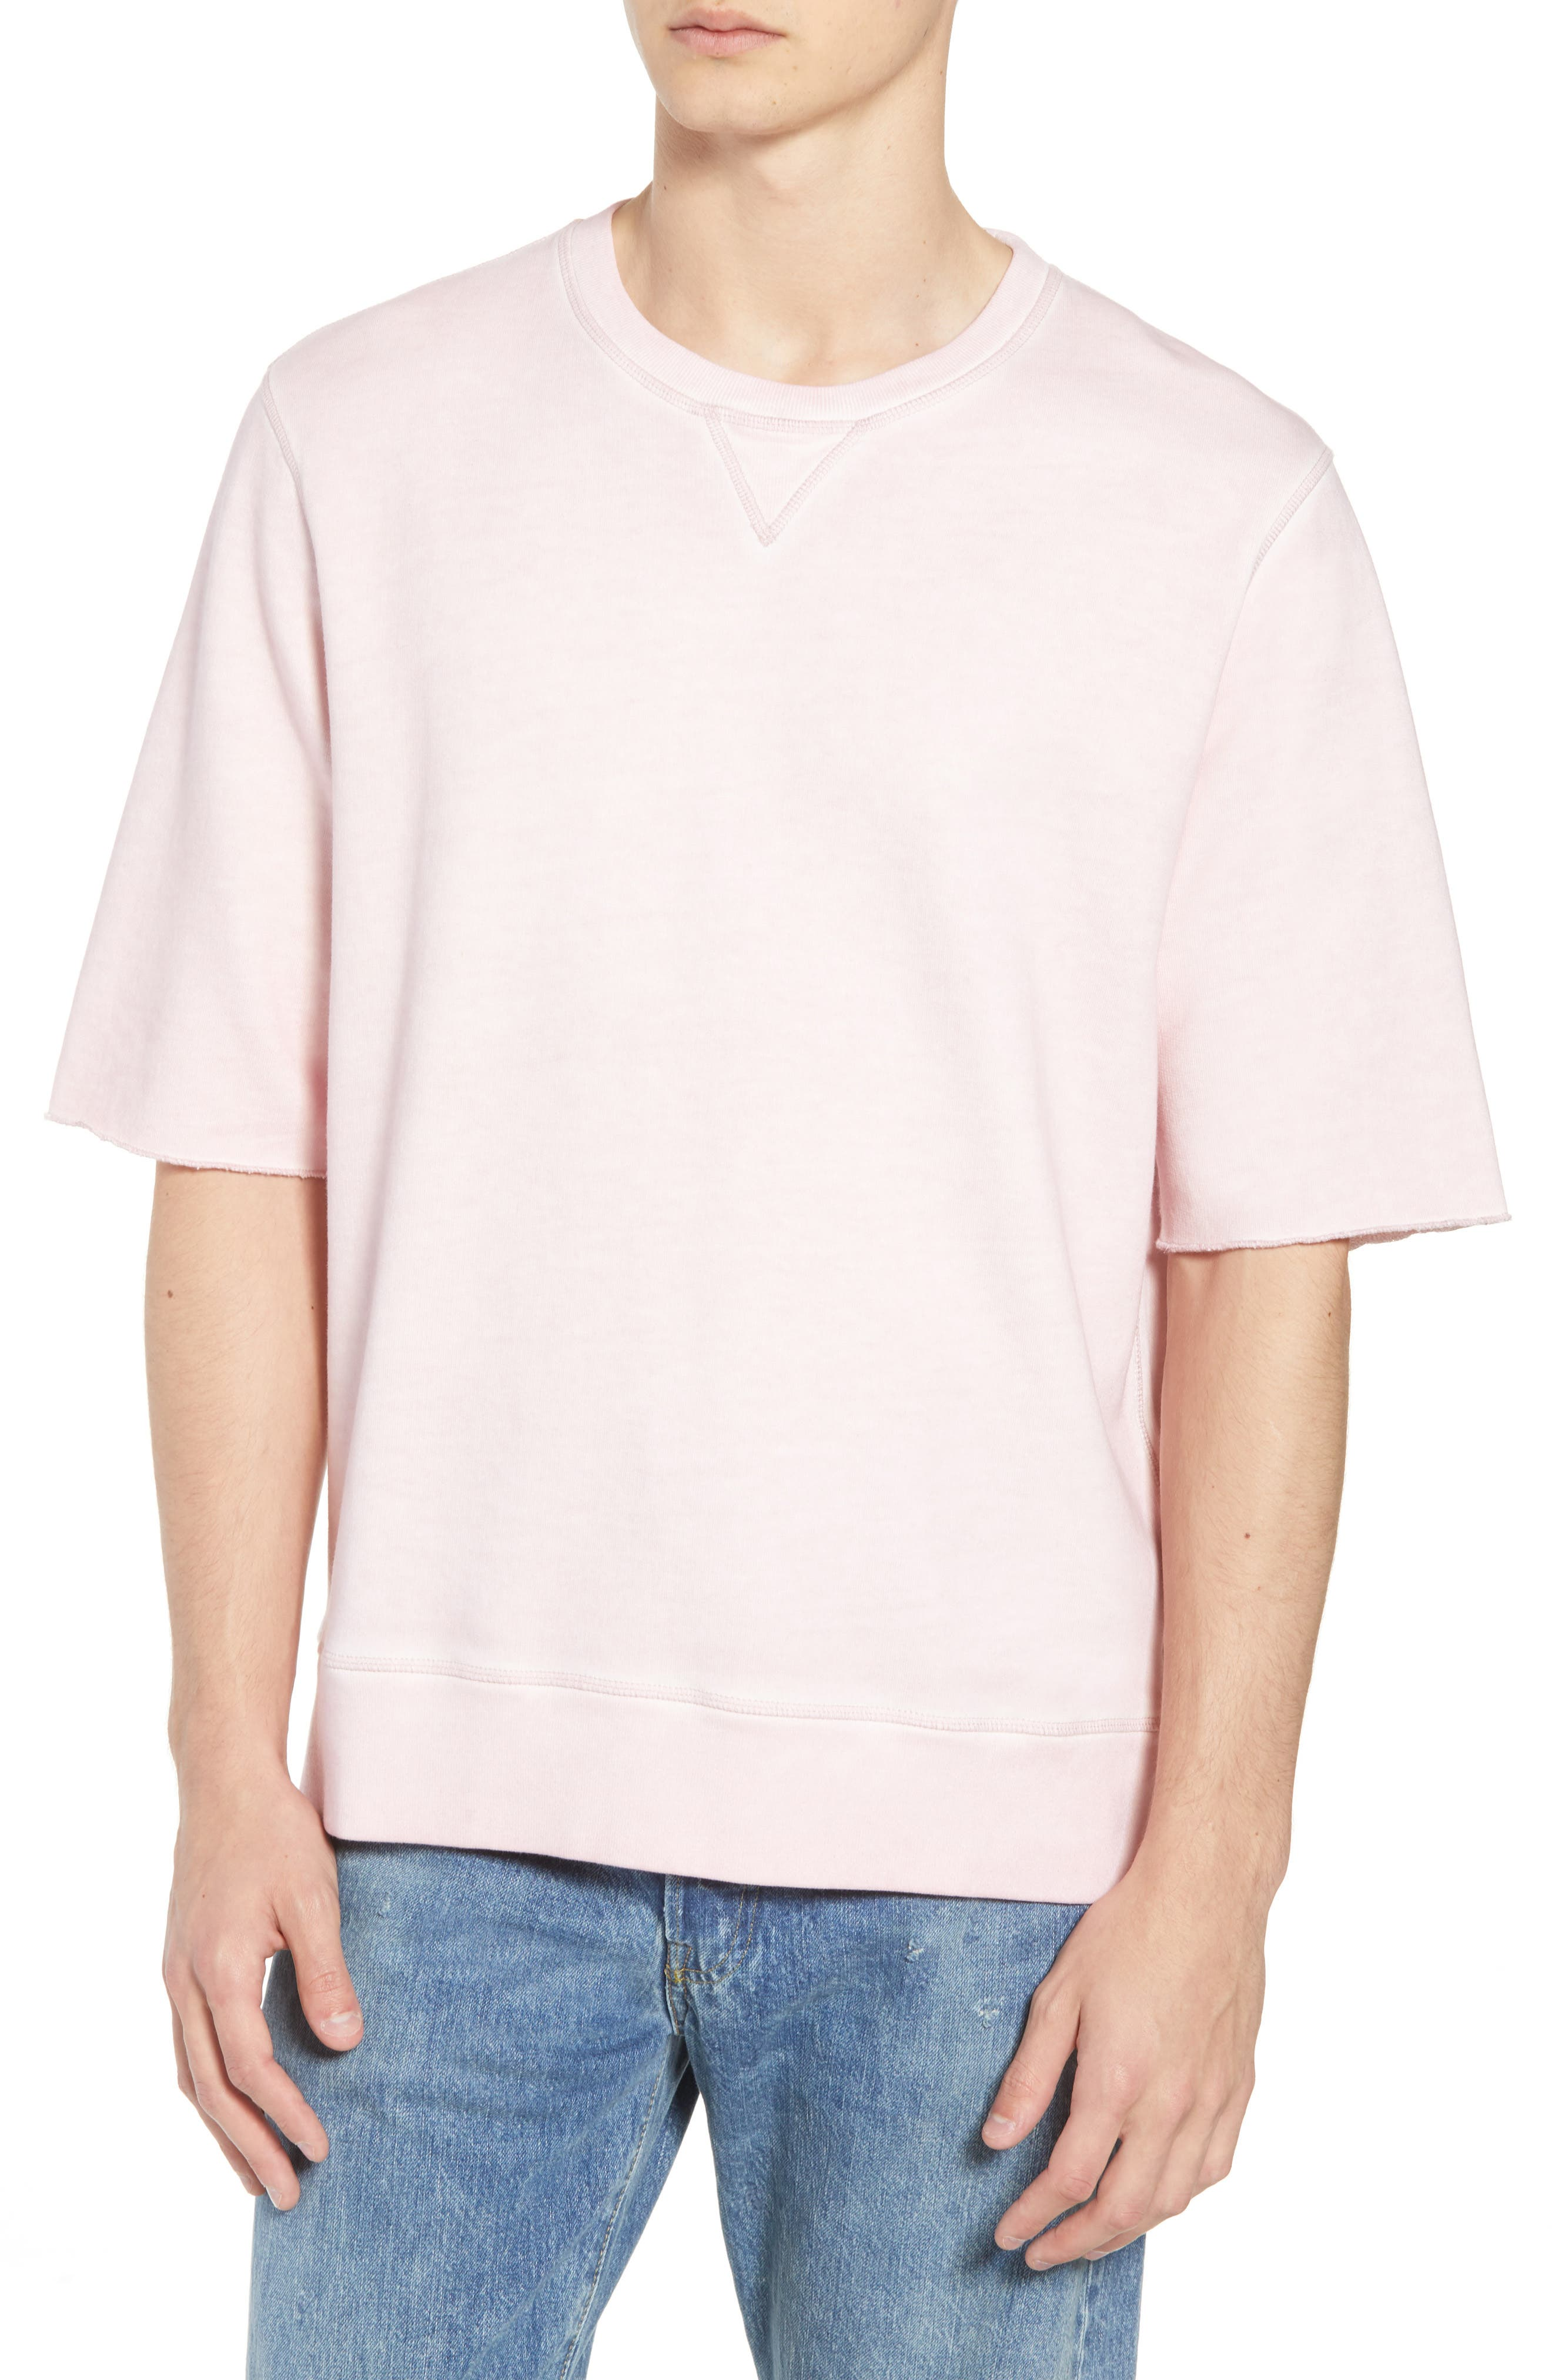 Levis'<sup>®</sup> Made & Crafted<sup>™</sup> Standard Fit T-Shirt,                             Main thumbnail 1, color,                             KEEPSAKE LILAC